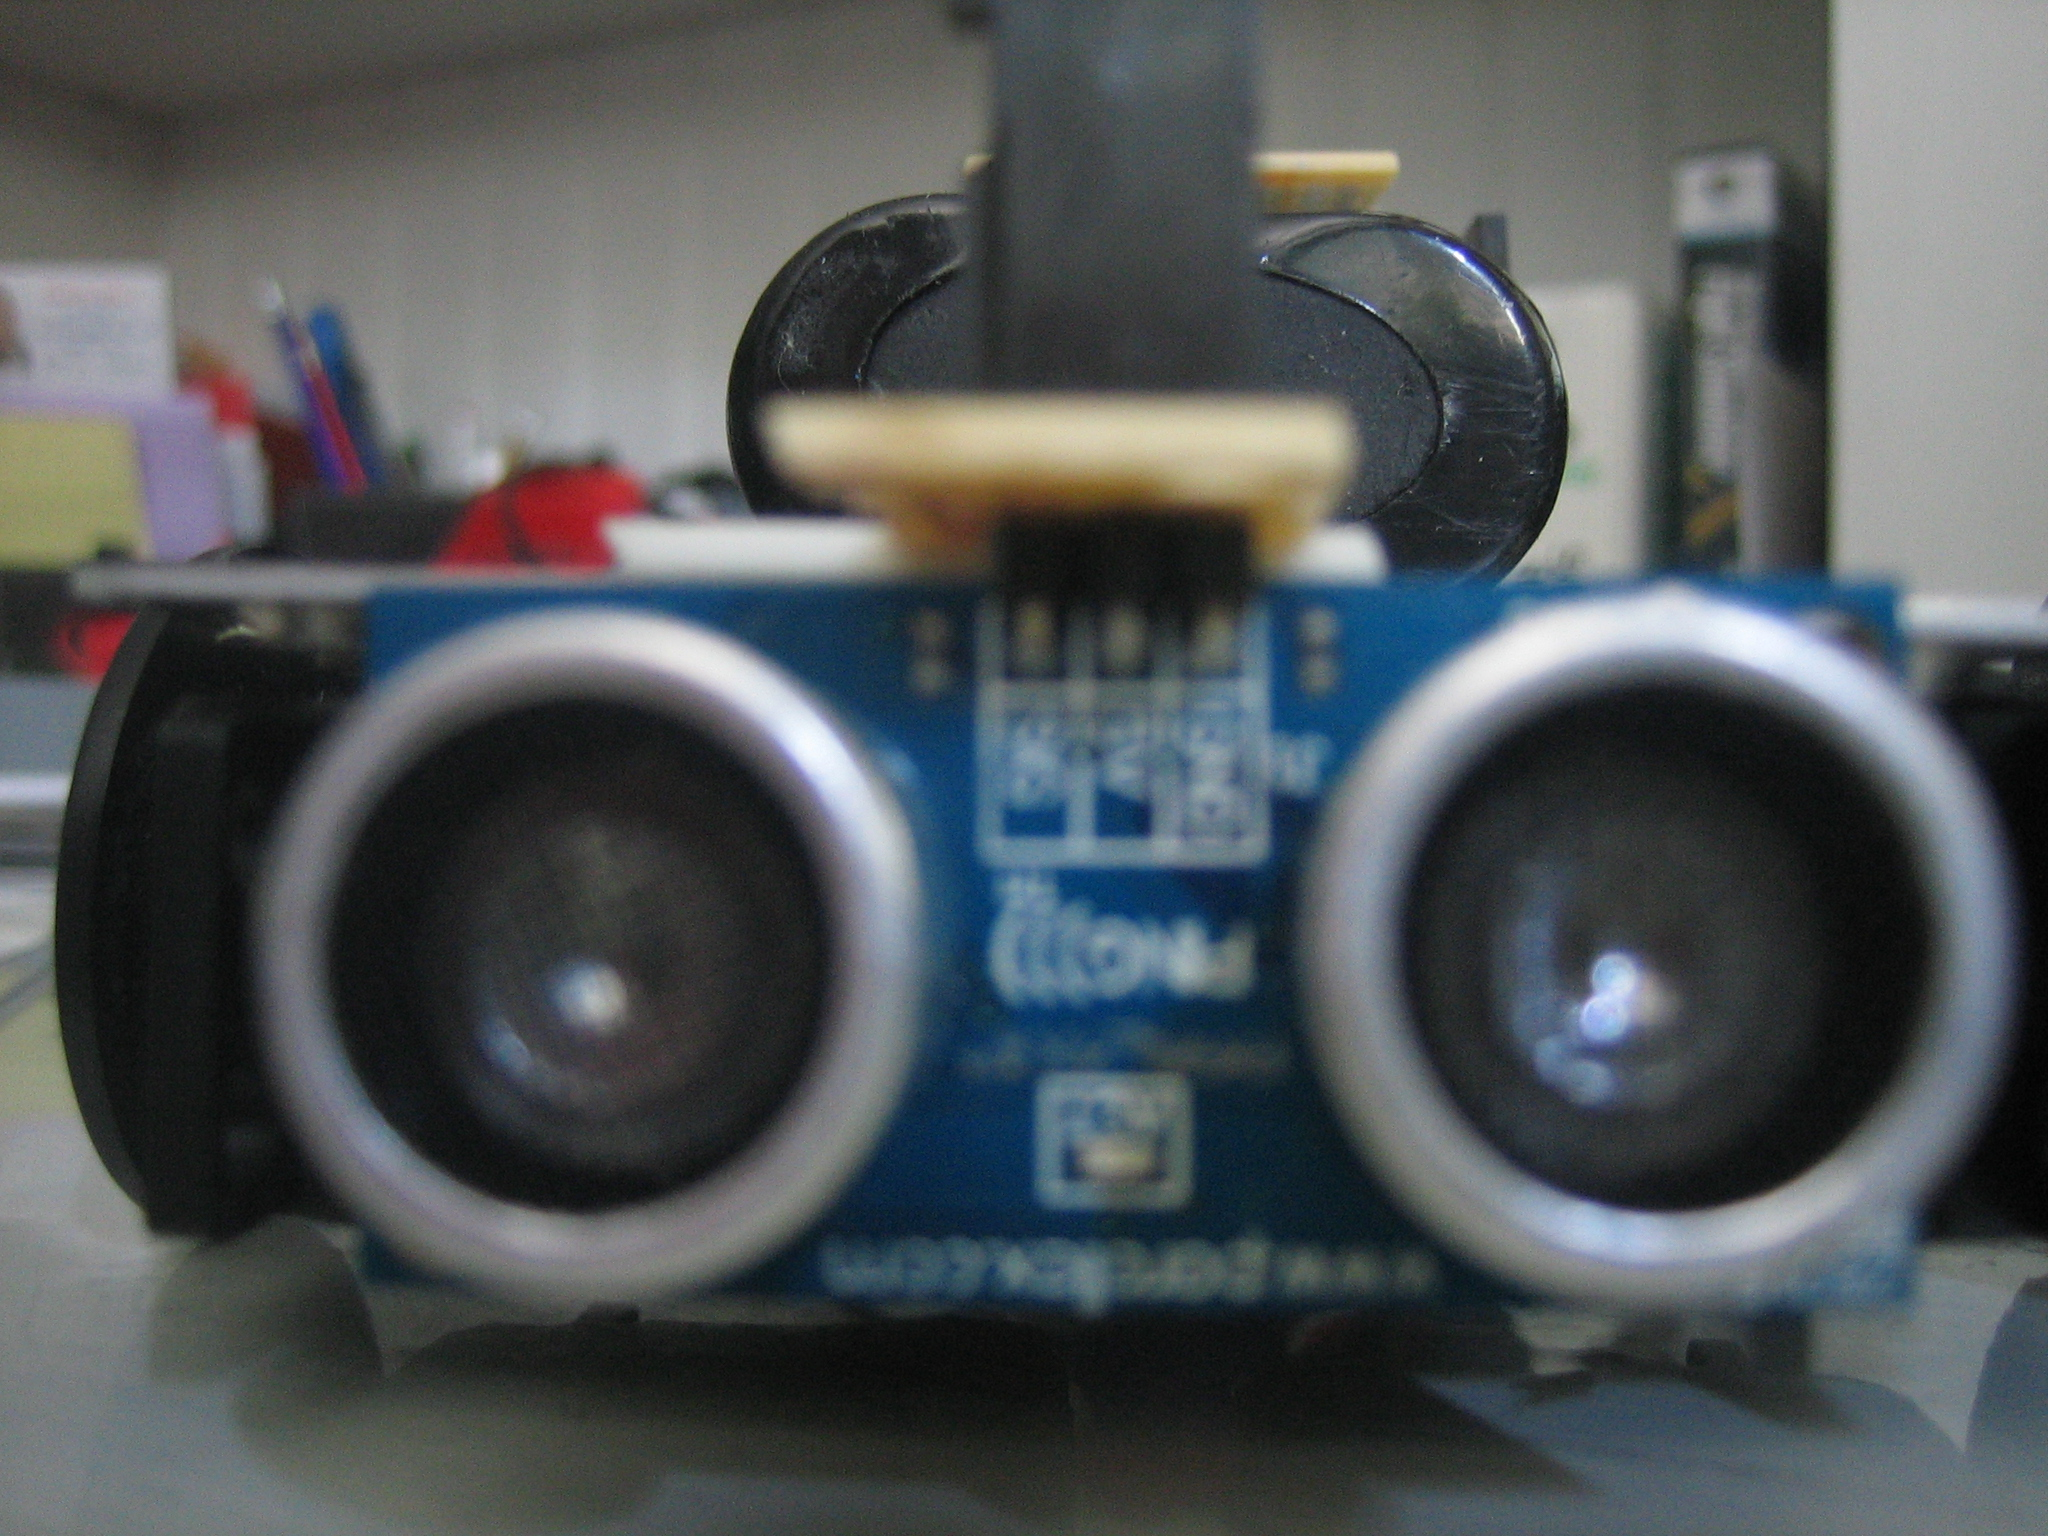 How to Make an Obstacles Avoiding Robot- Arduino Style